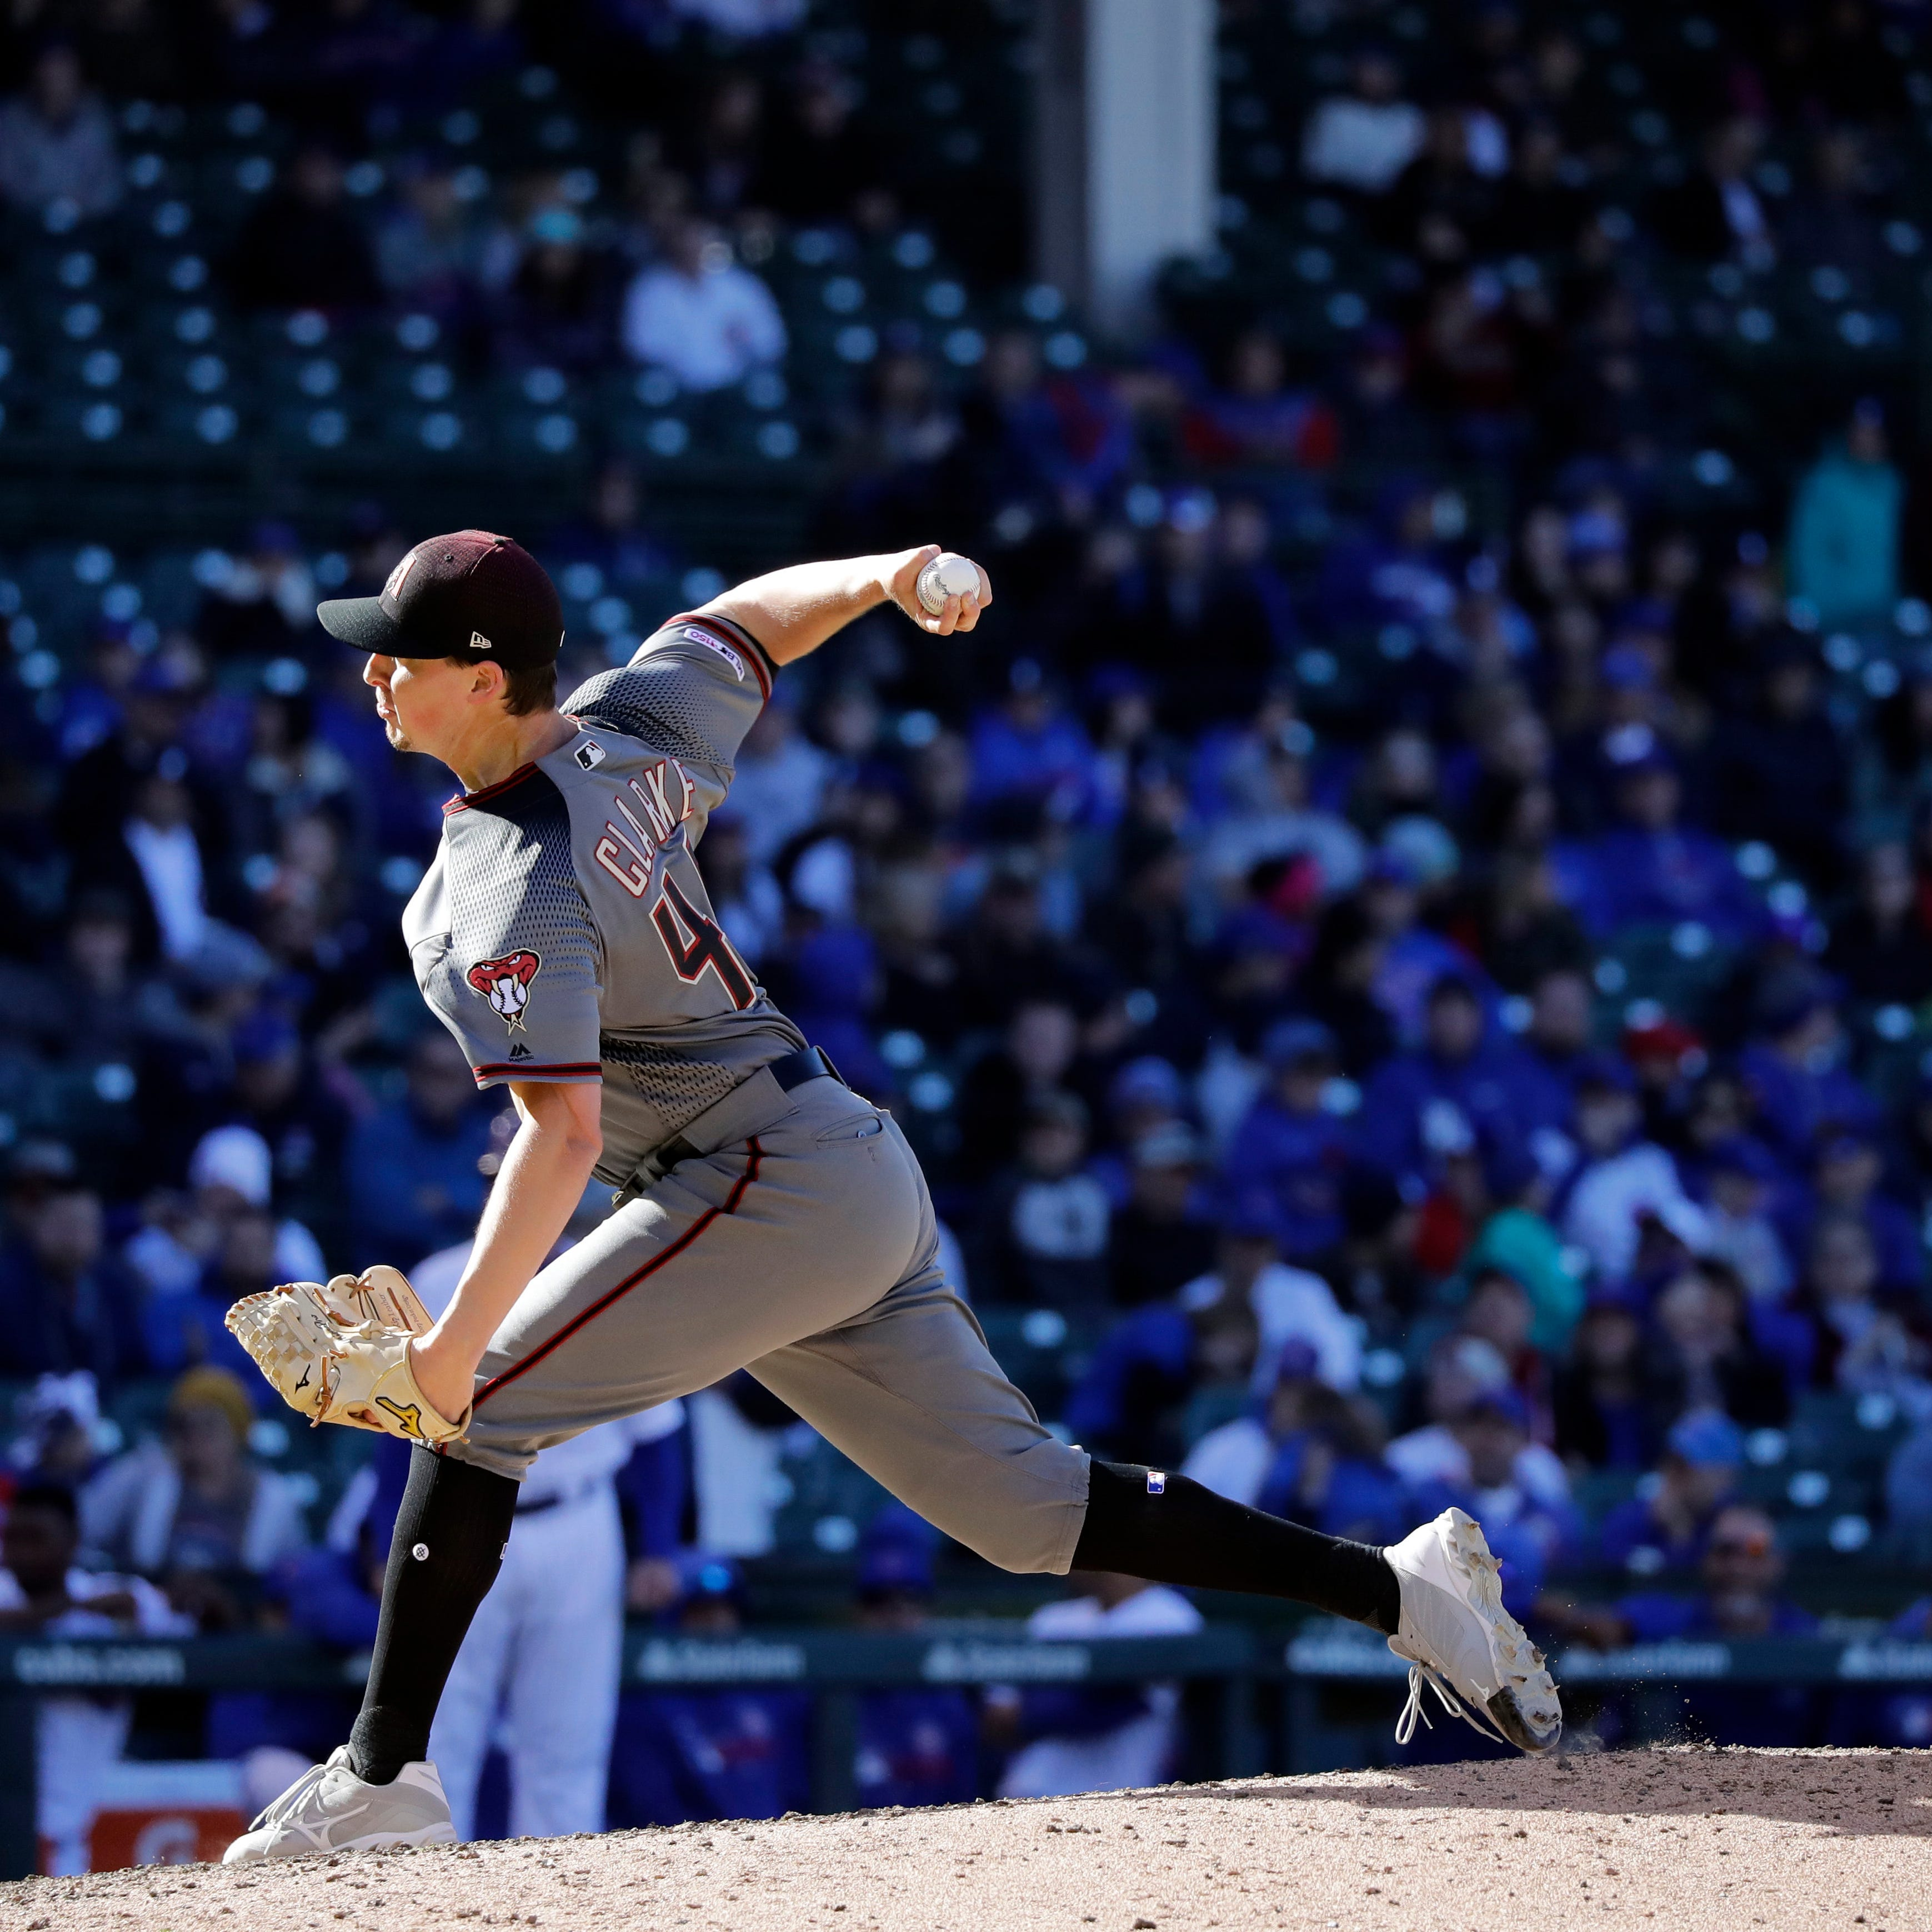 Who could replace Zack Godley in the Diamondbacks' starting rotation?